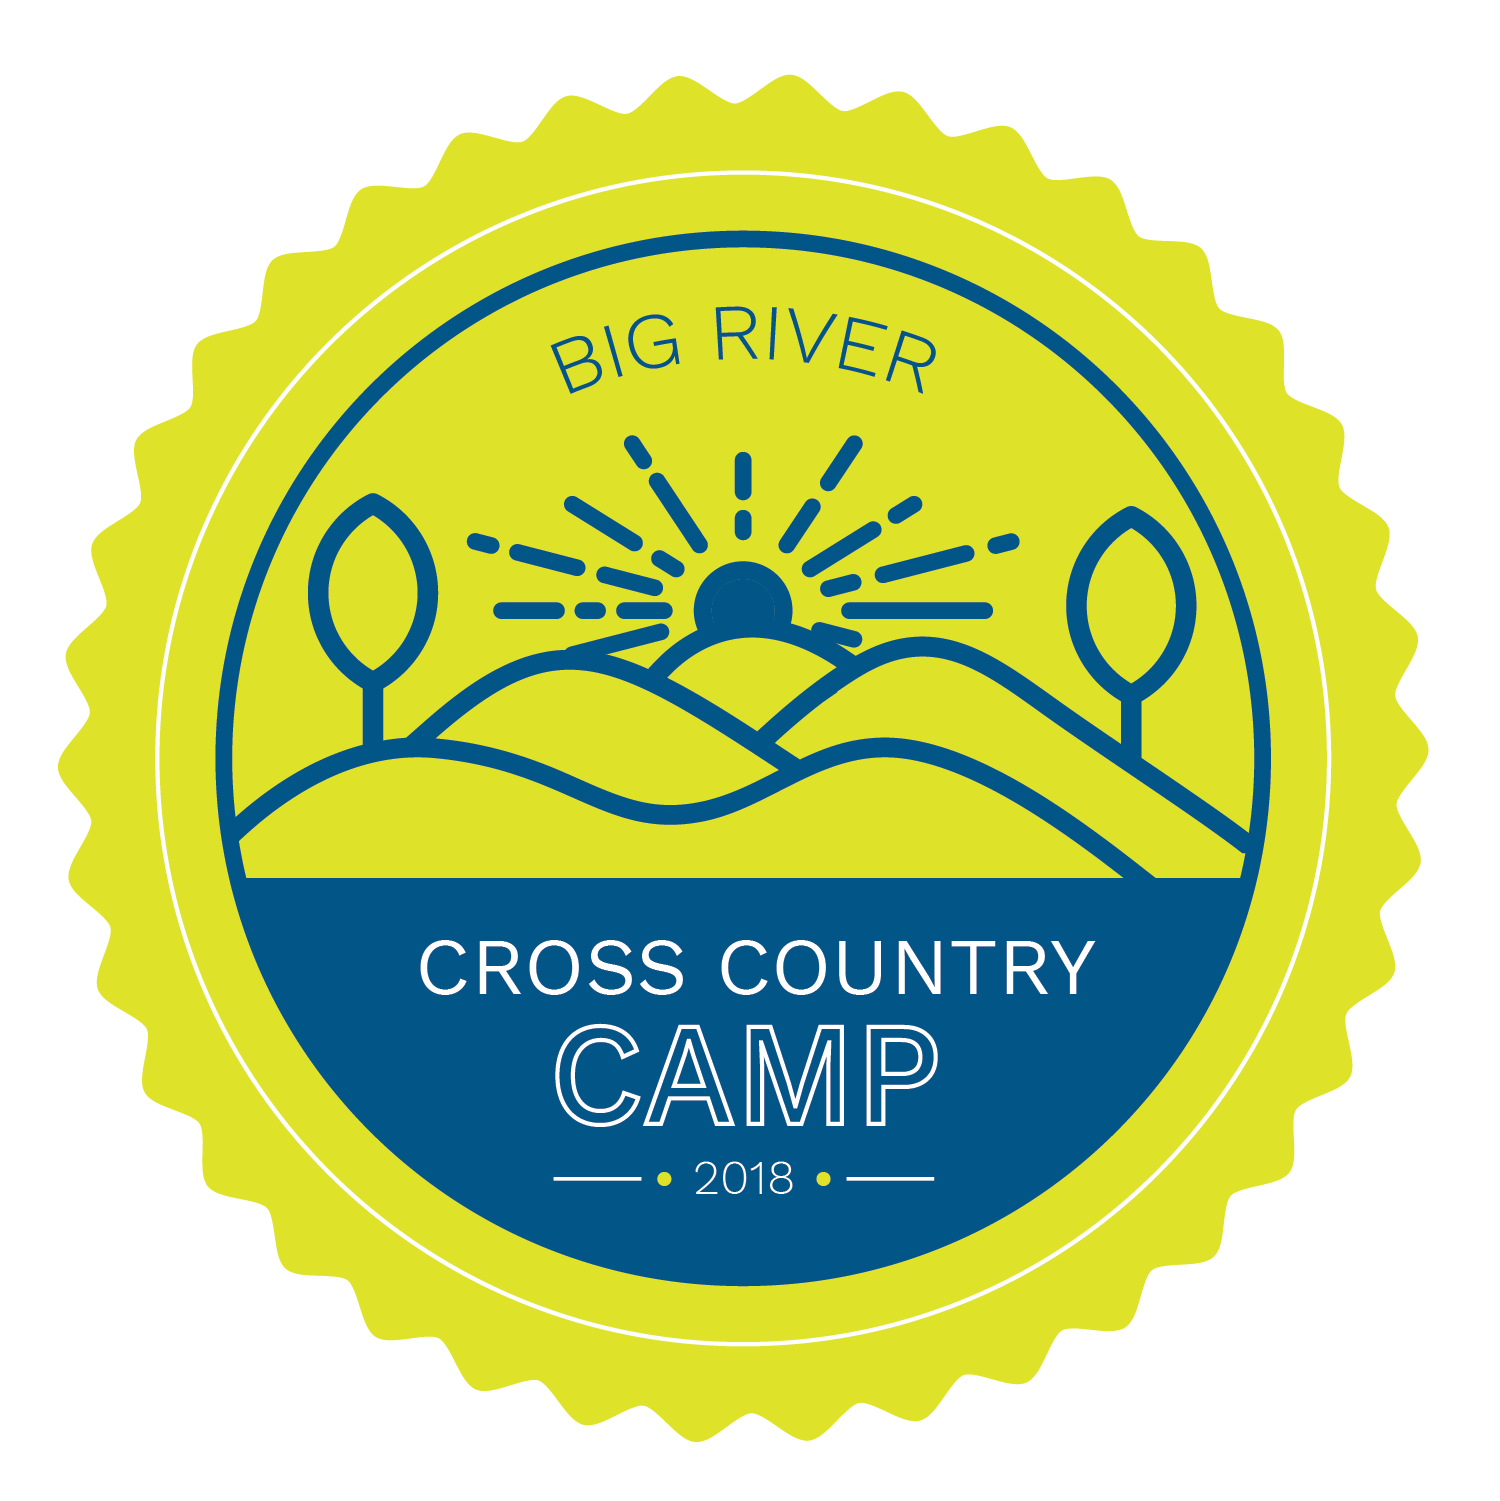 Cross country symbol png. Camp big river running